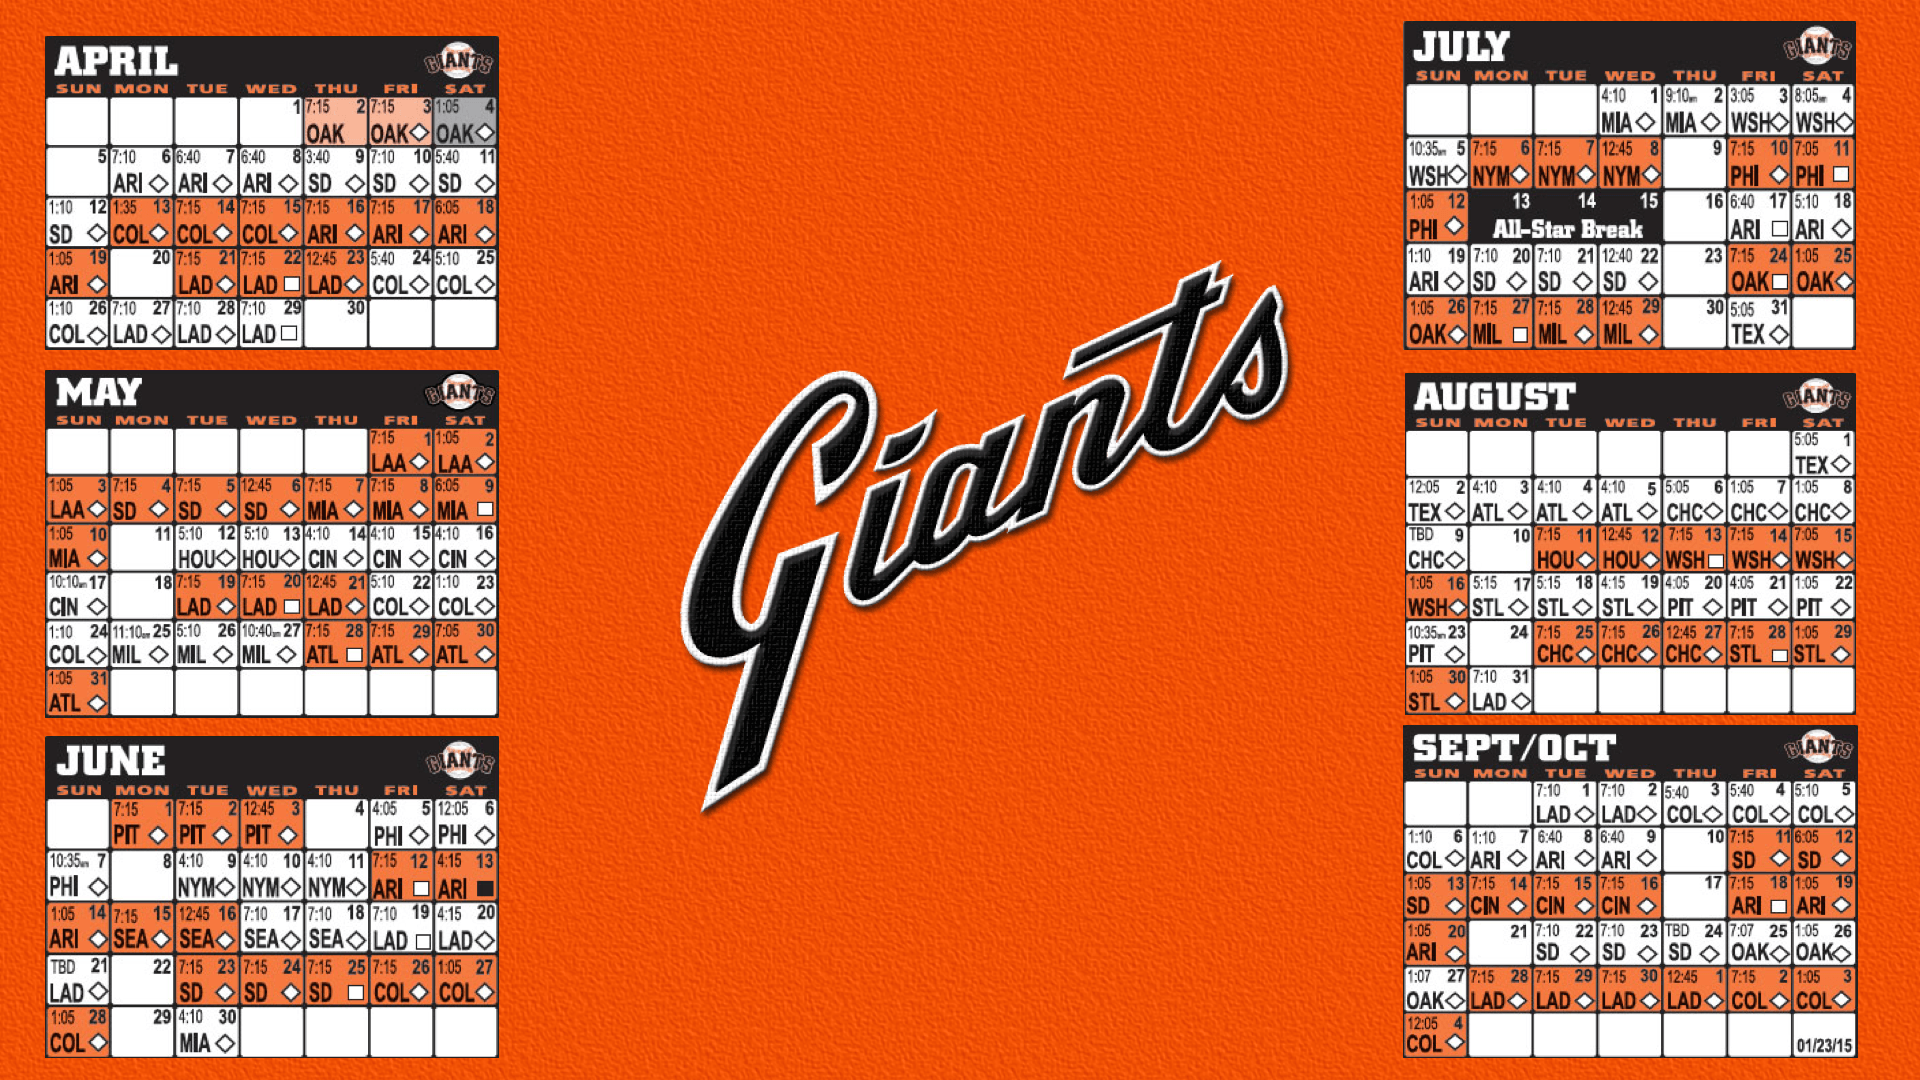 It's just a picture of Current Ny Giants Printable Schedule